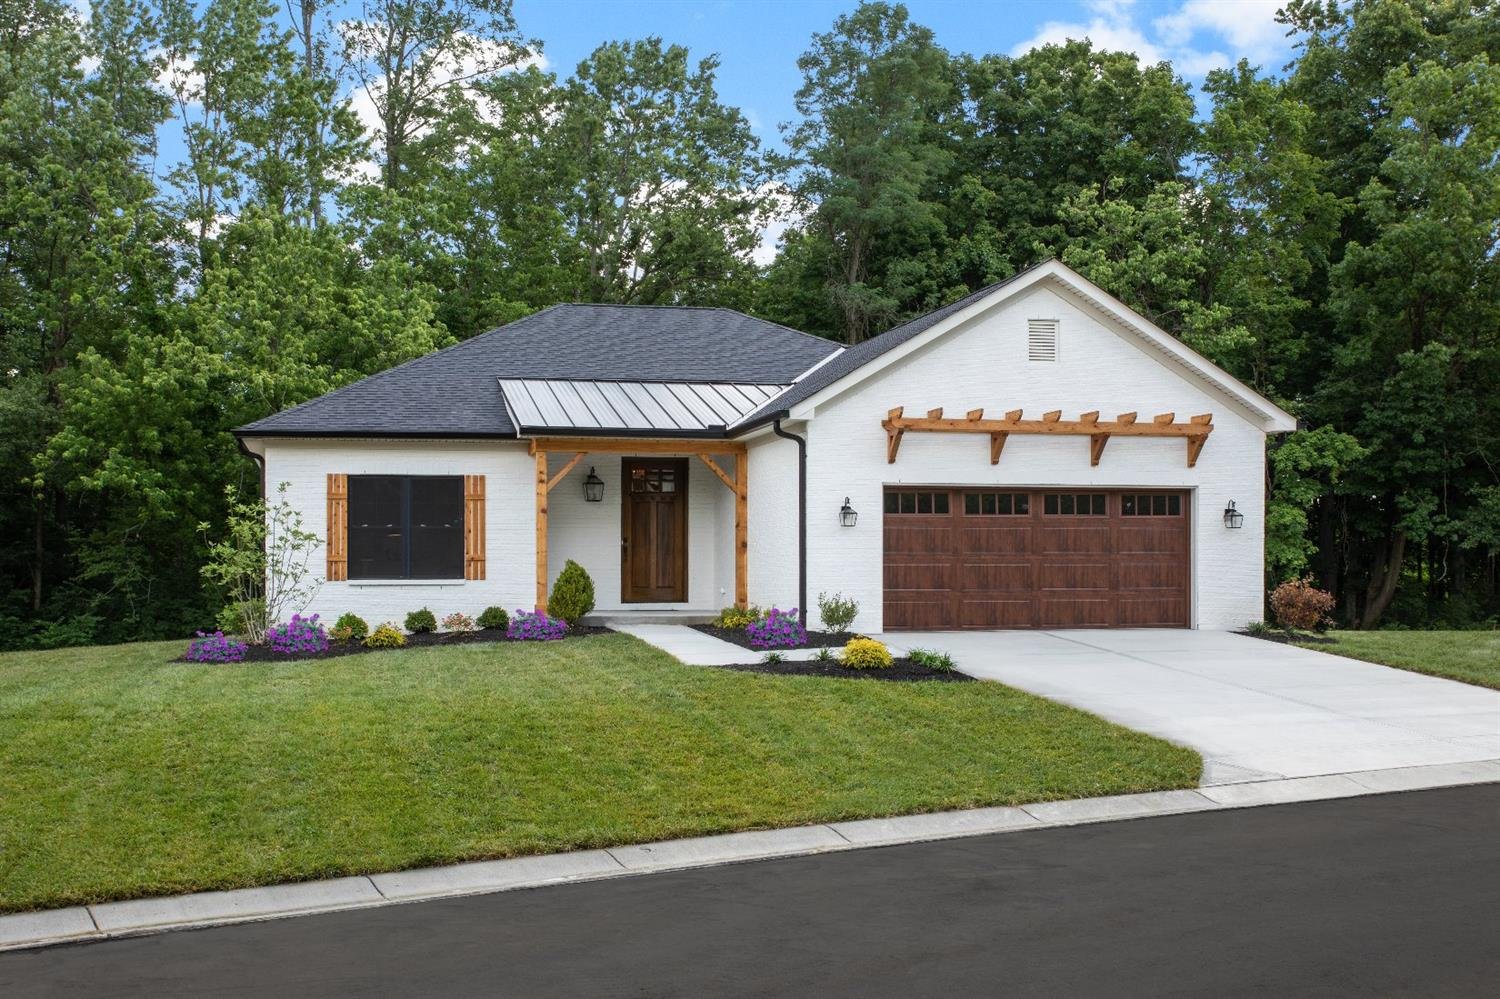 Property for sale at 470 Sanctuary Way, Union Twp,  Ohio 45255